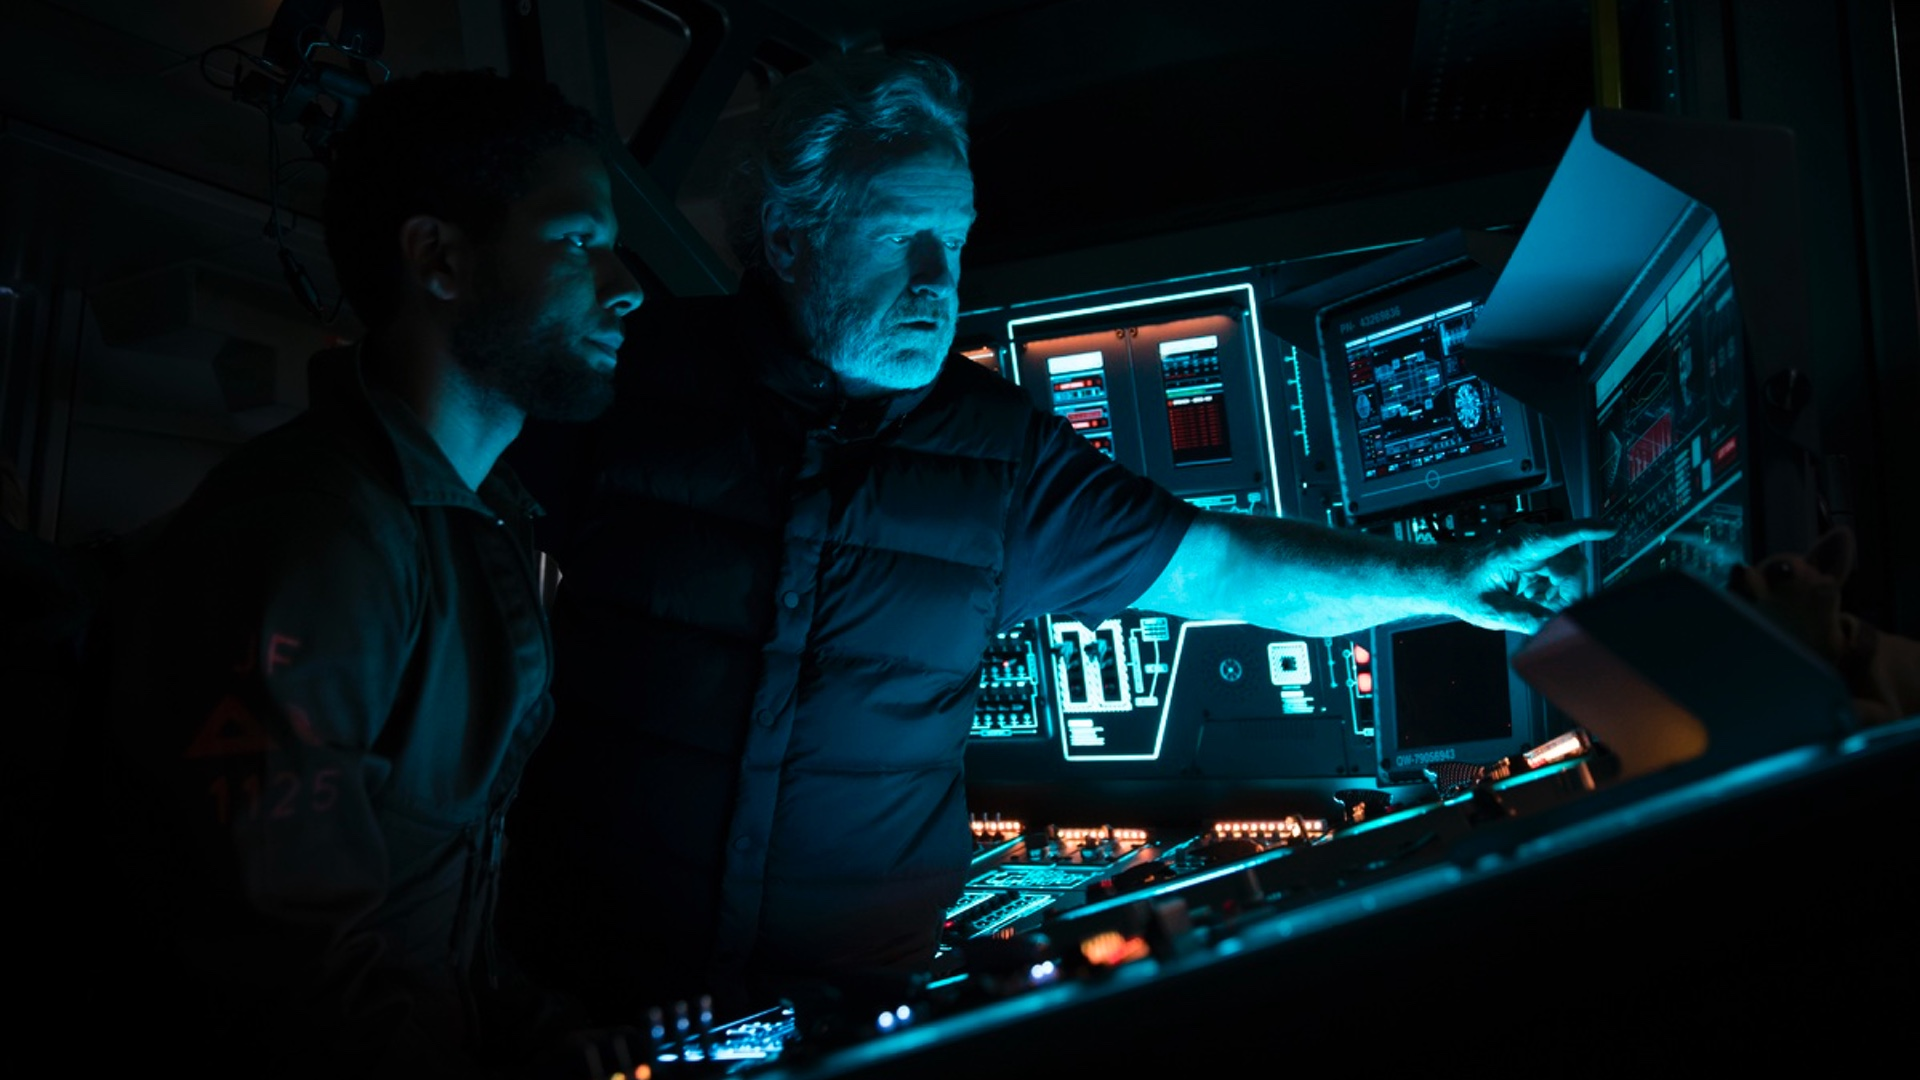 ridley-scott-says-hes-too-dangerous-to-direct-a-star-wars-movie-social.jpg